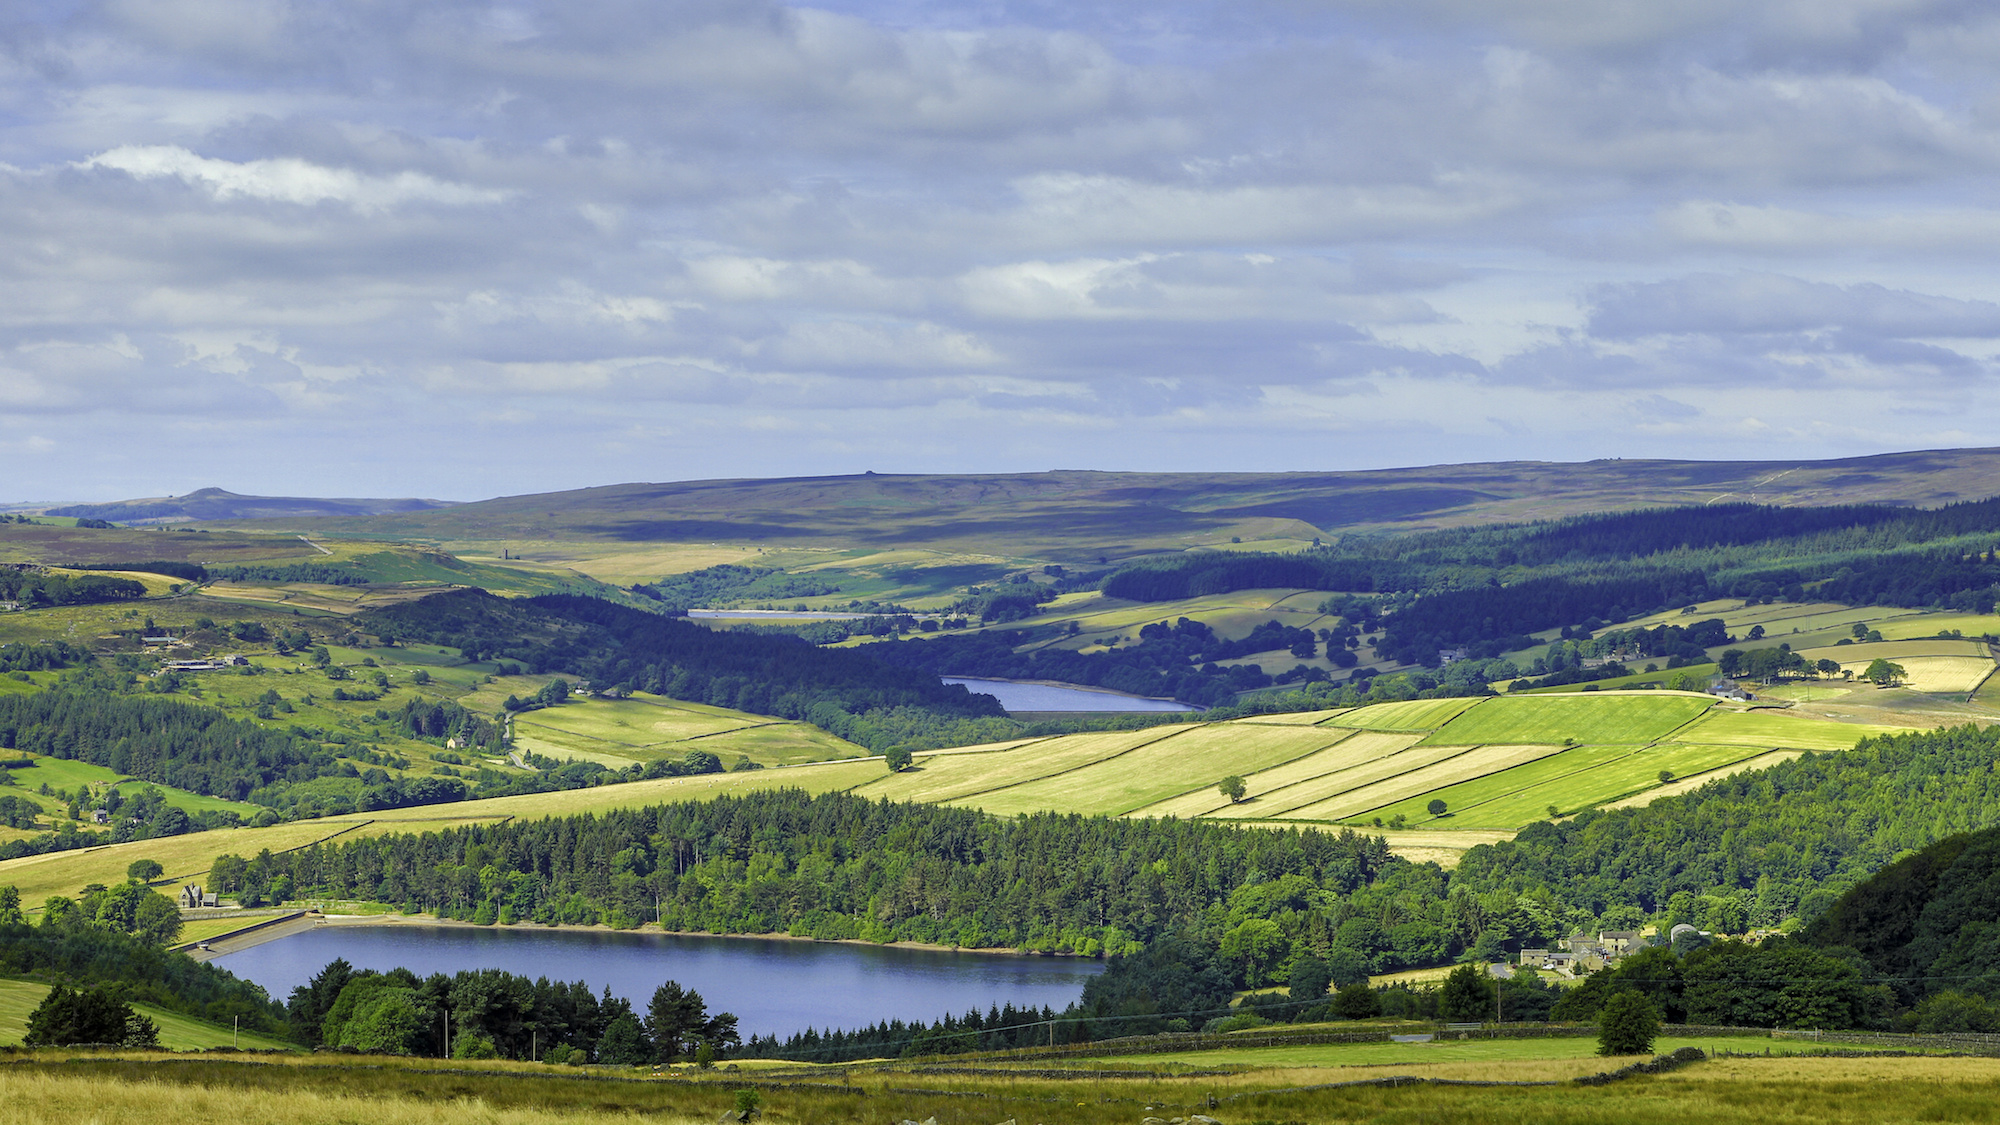 Agden, Dale Dike and Strines reservoirs, Bradfield, Yorkshire